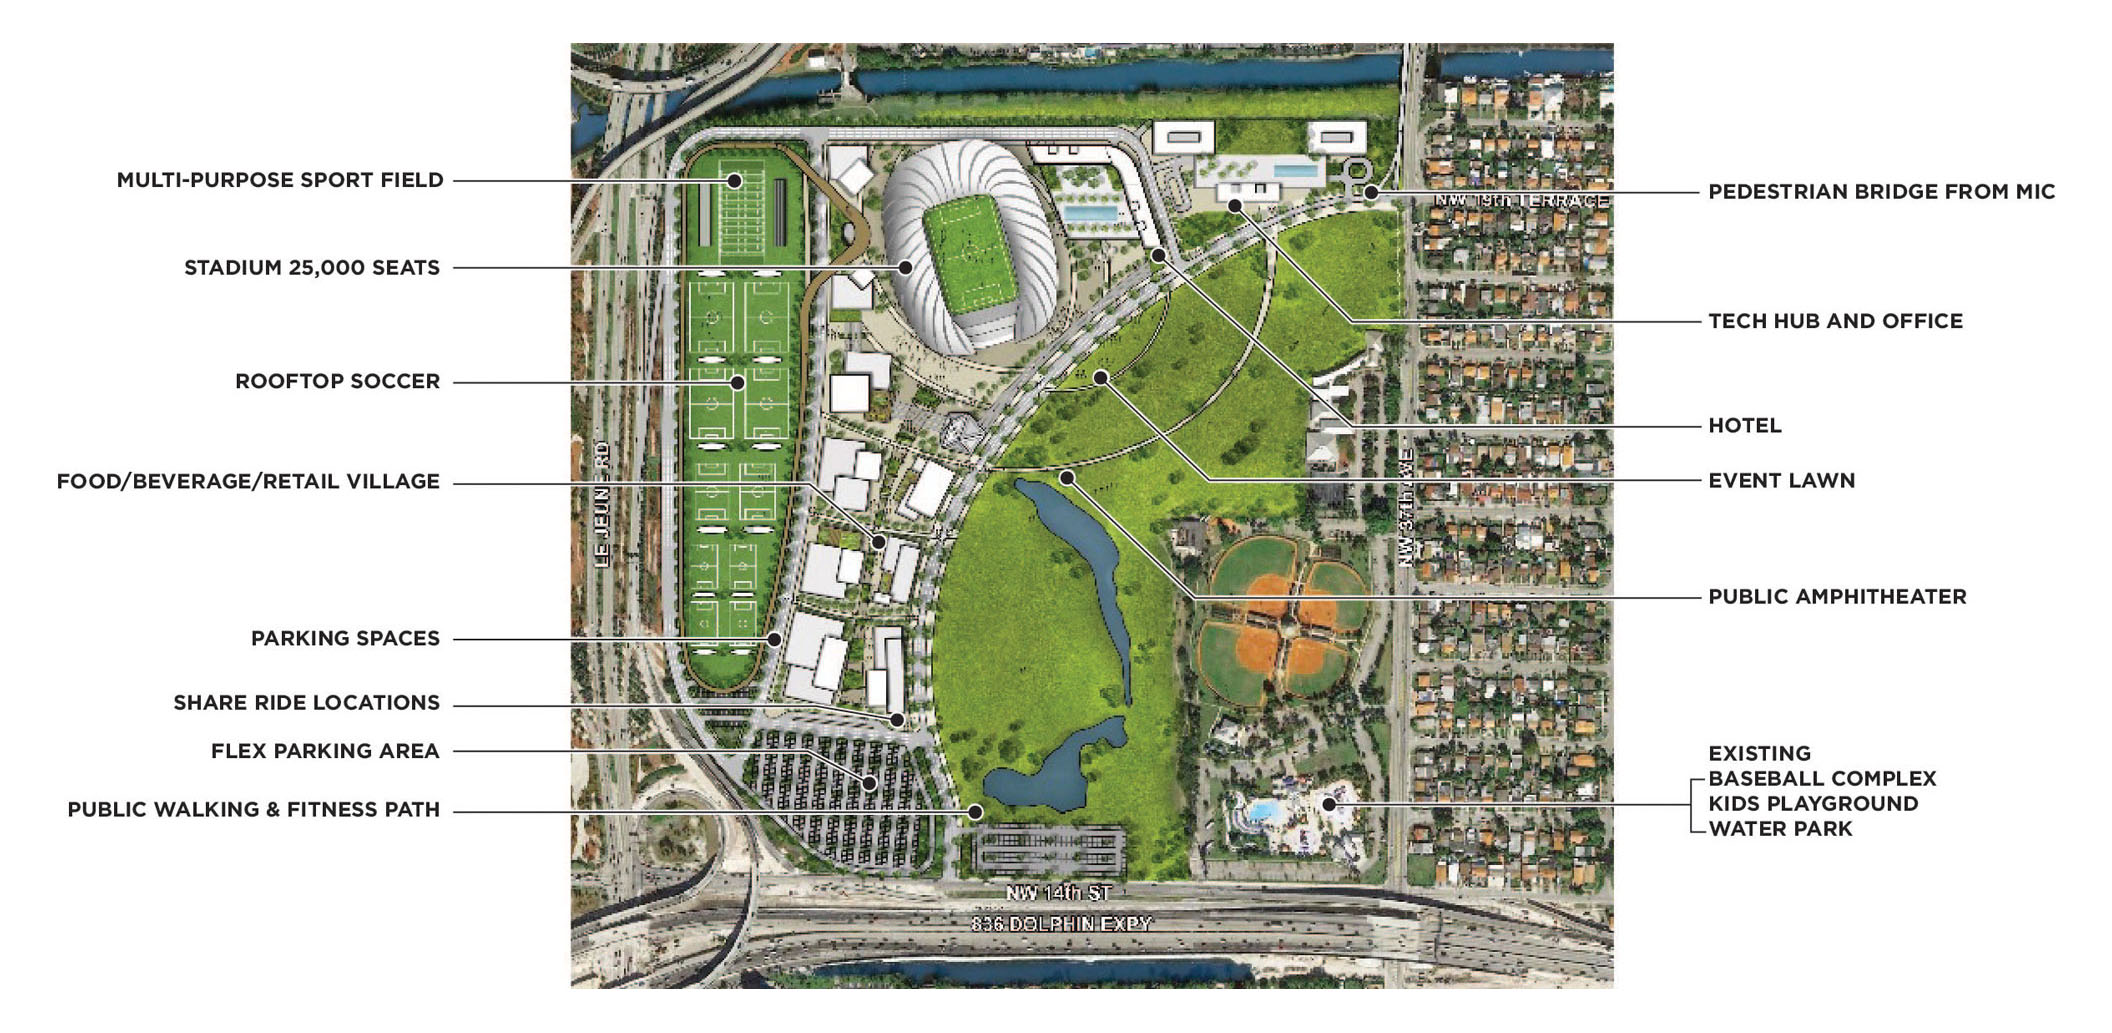 Miami Freedom Park - MLS Soccer